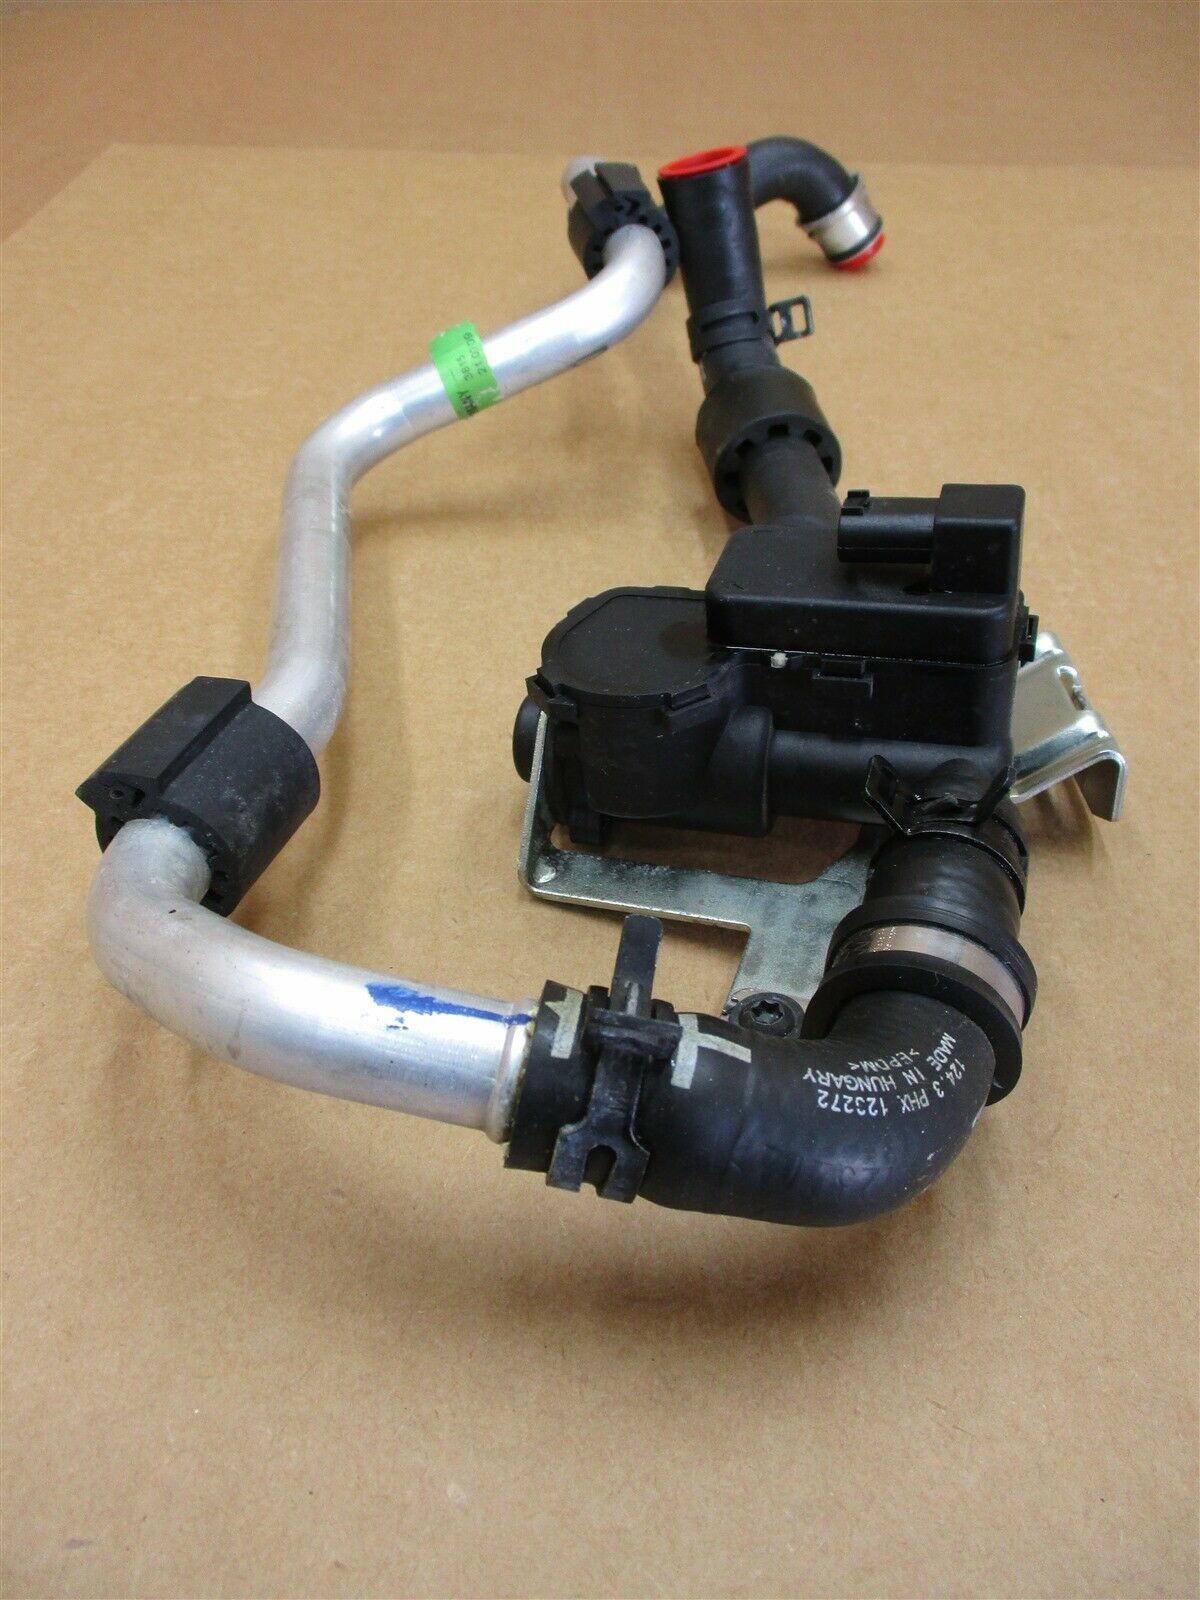 10 Panamera 4S AWD 970 Porsche THERMOSTAT PIPING 97057257100 97057258600 56,000